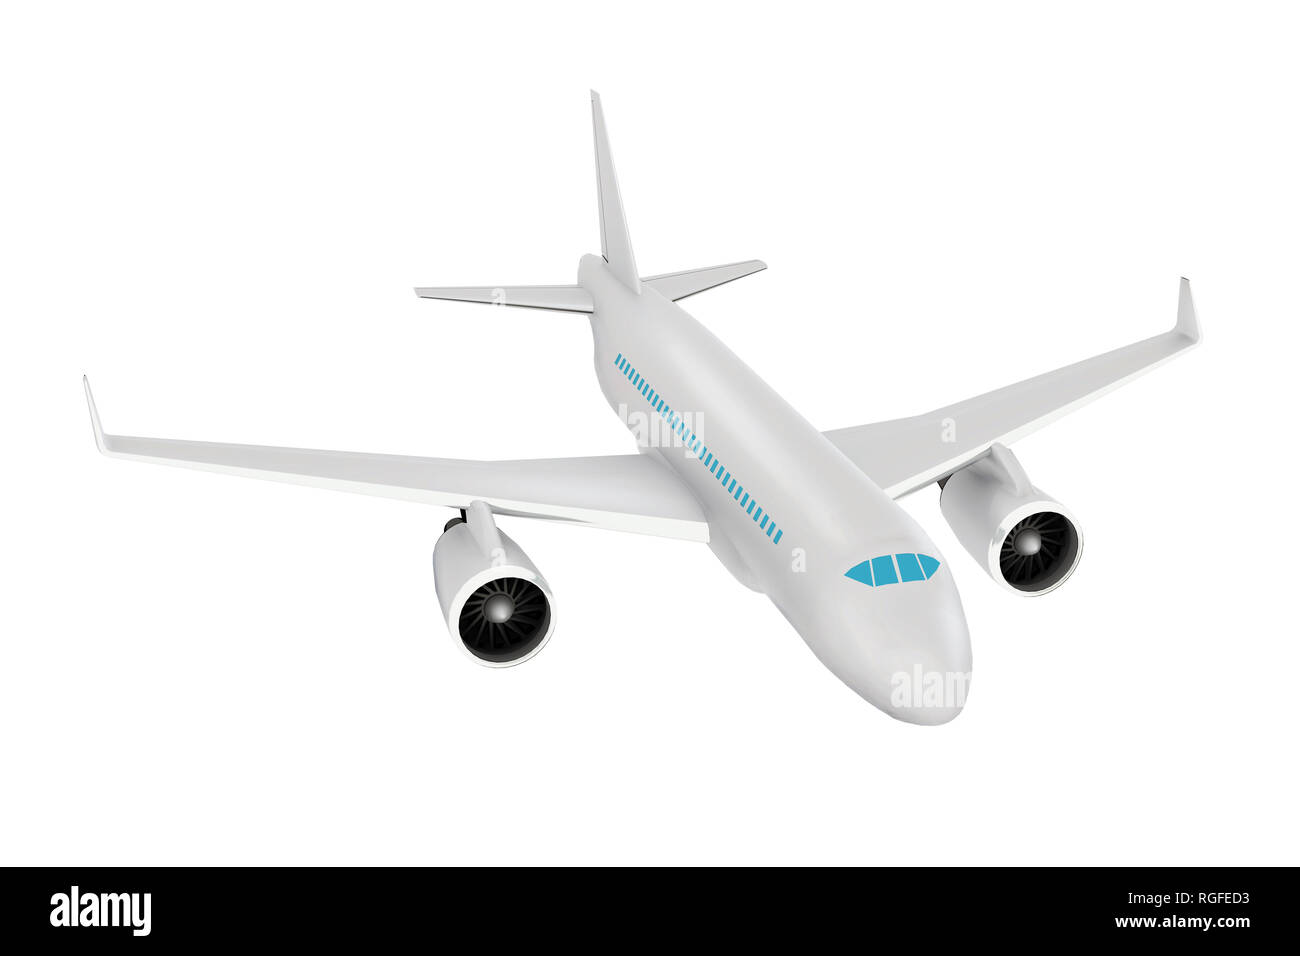 Passenger aircraft. Realistic 3d rendered model, isolated high angle view - Stock Image